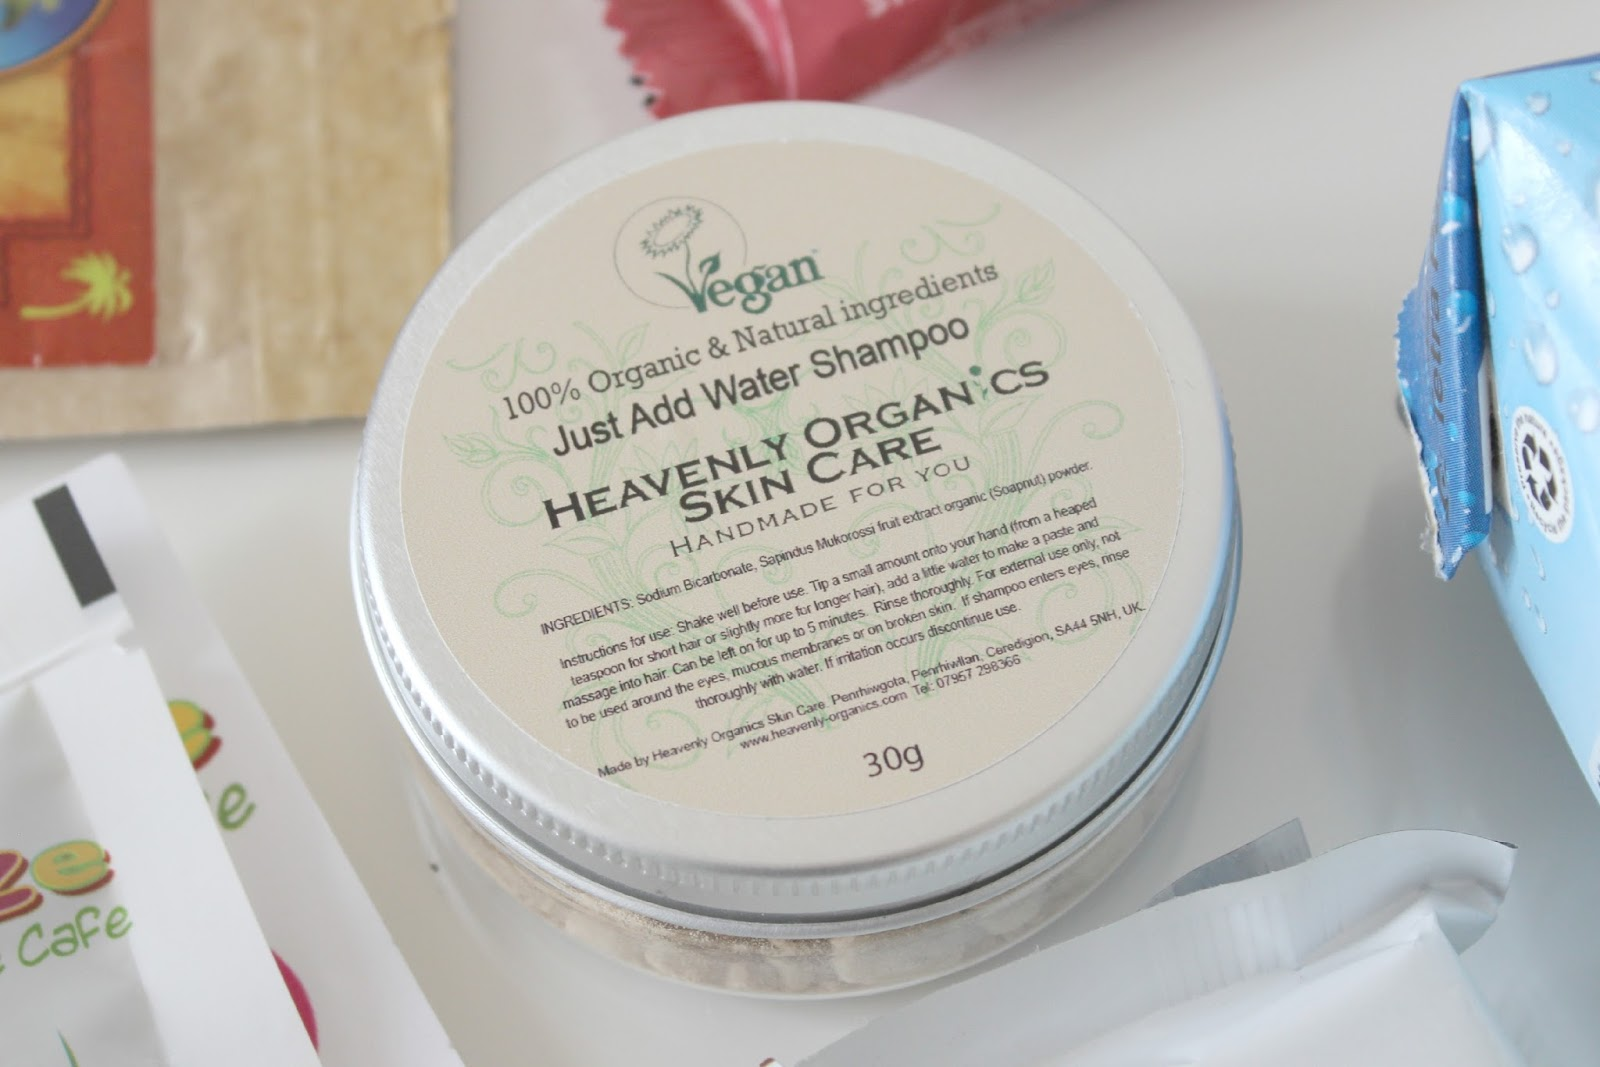 A picture of Heavenly Organics 'Just Add Water' Shampoo